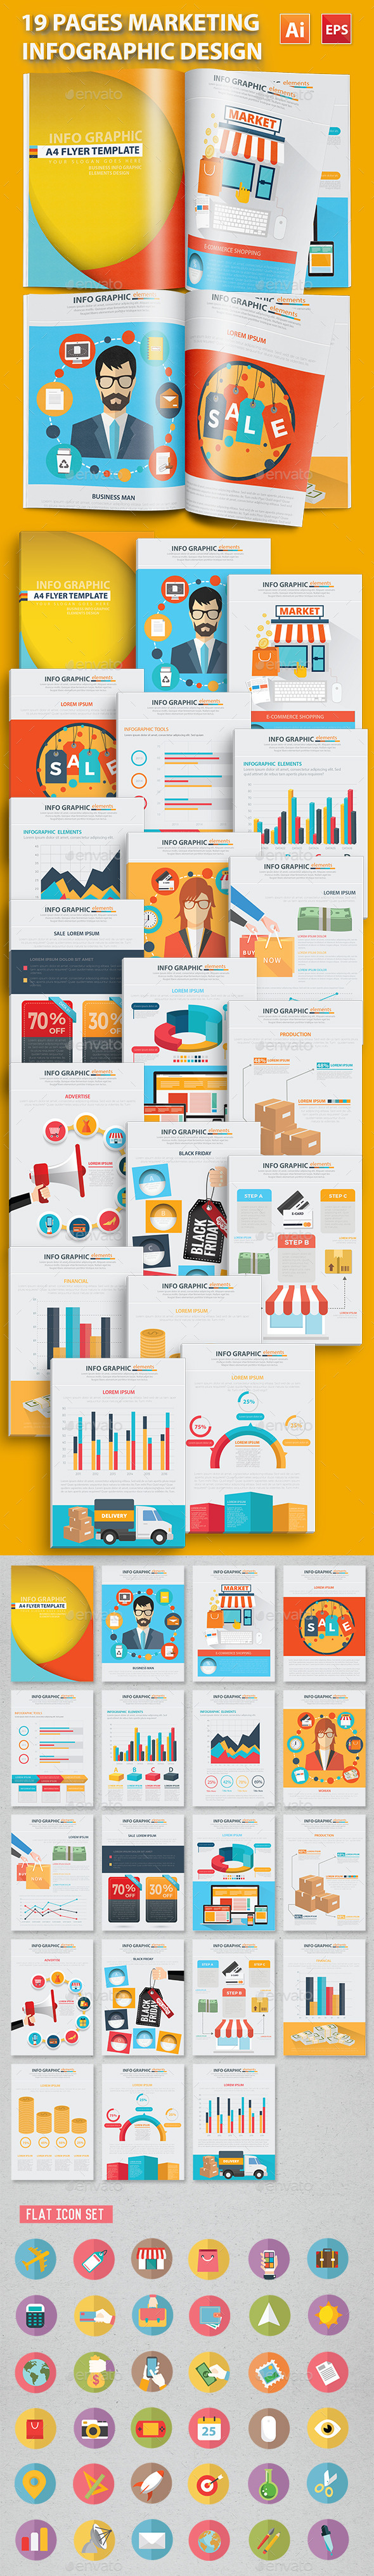 Marketing Infographics 19 Pages Design - Infographics